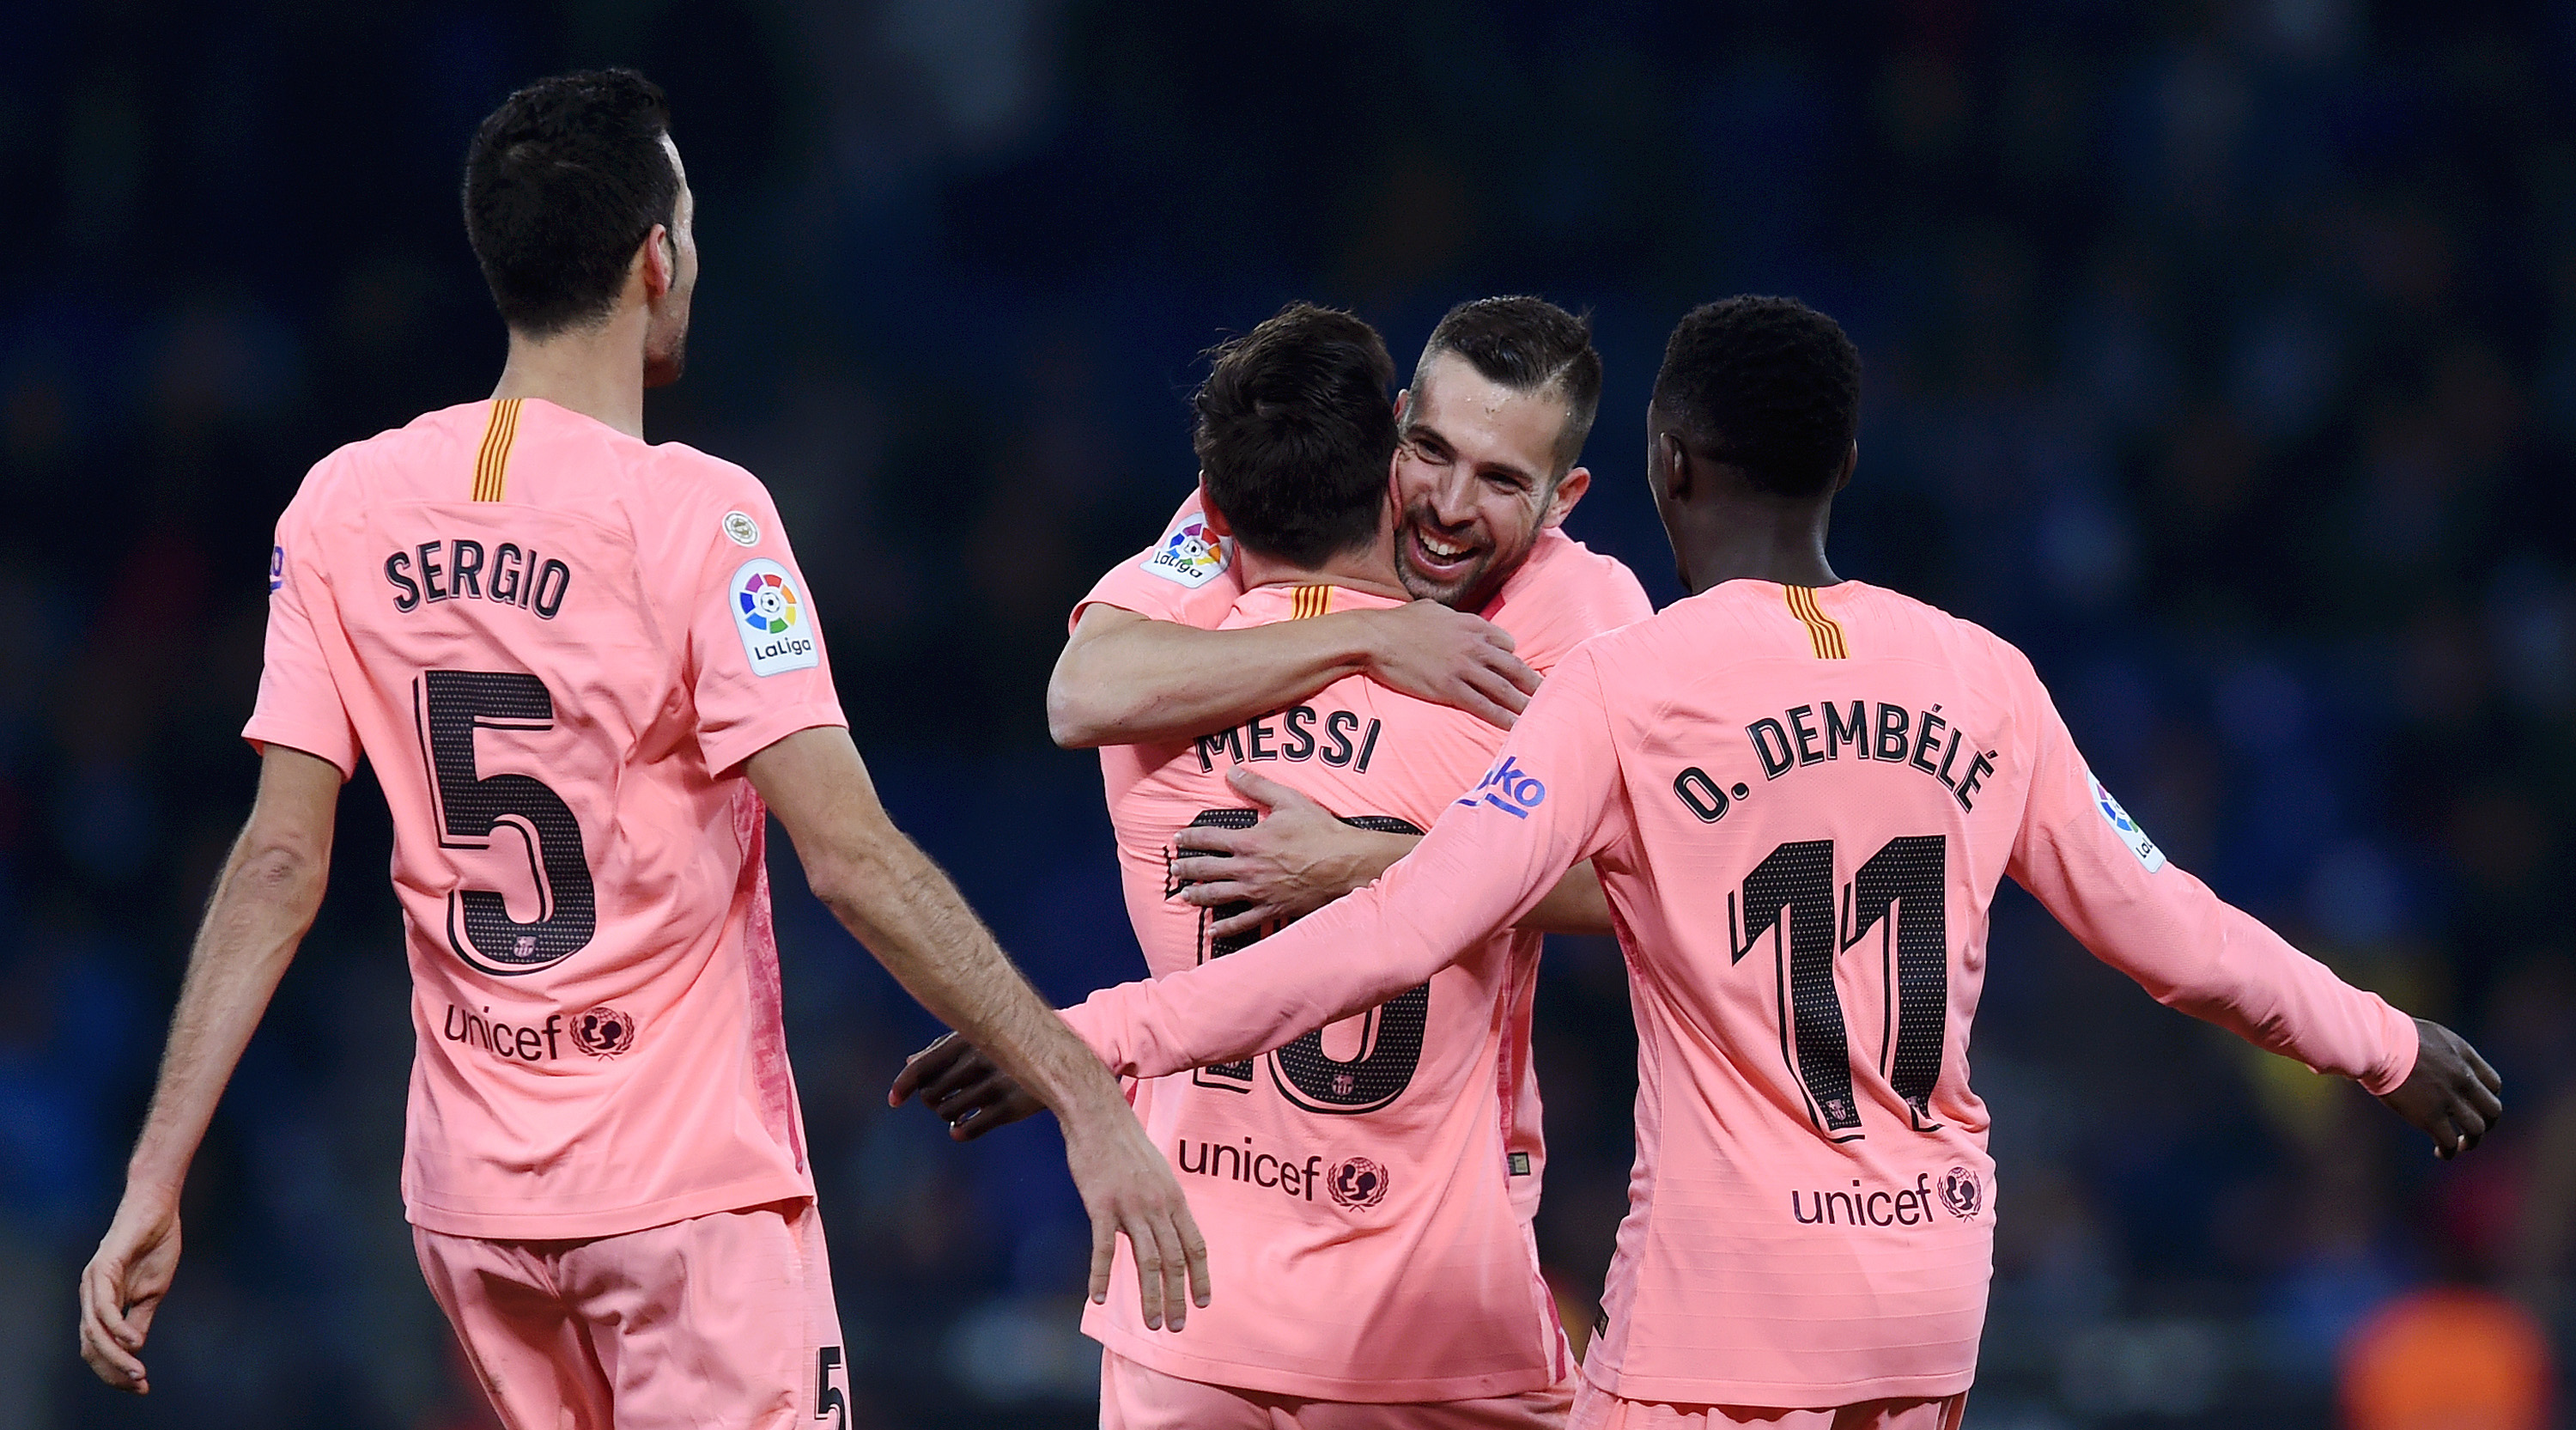 Lionel Messi of Barcelona celebrates with teammates after scoring his team's fourth goal during the La Liga match between RCD Espanyol and FC Barcelona at RCDE Stadium on December 8, 2018 in Barcelona, Spain. (Photo by Alex Caparros/Getty Images)